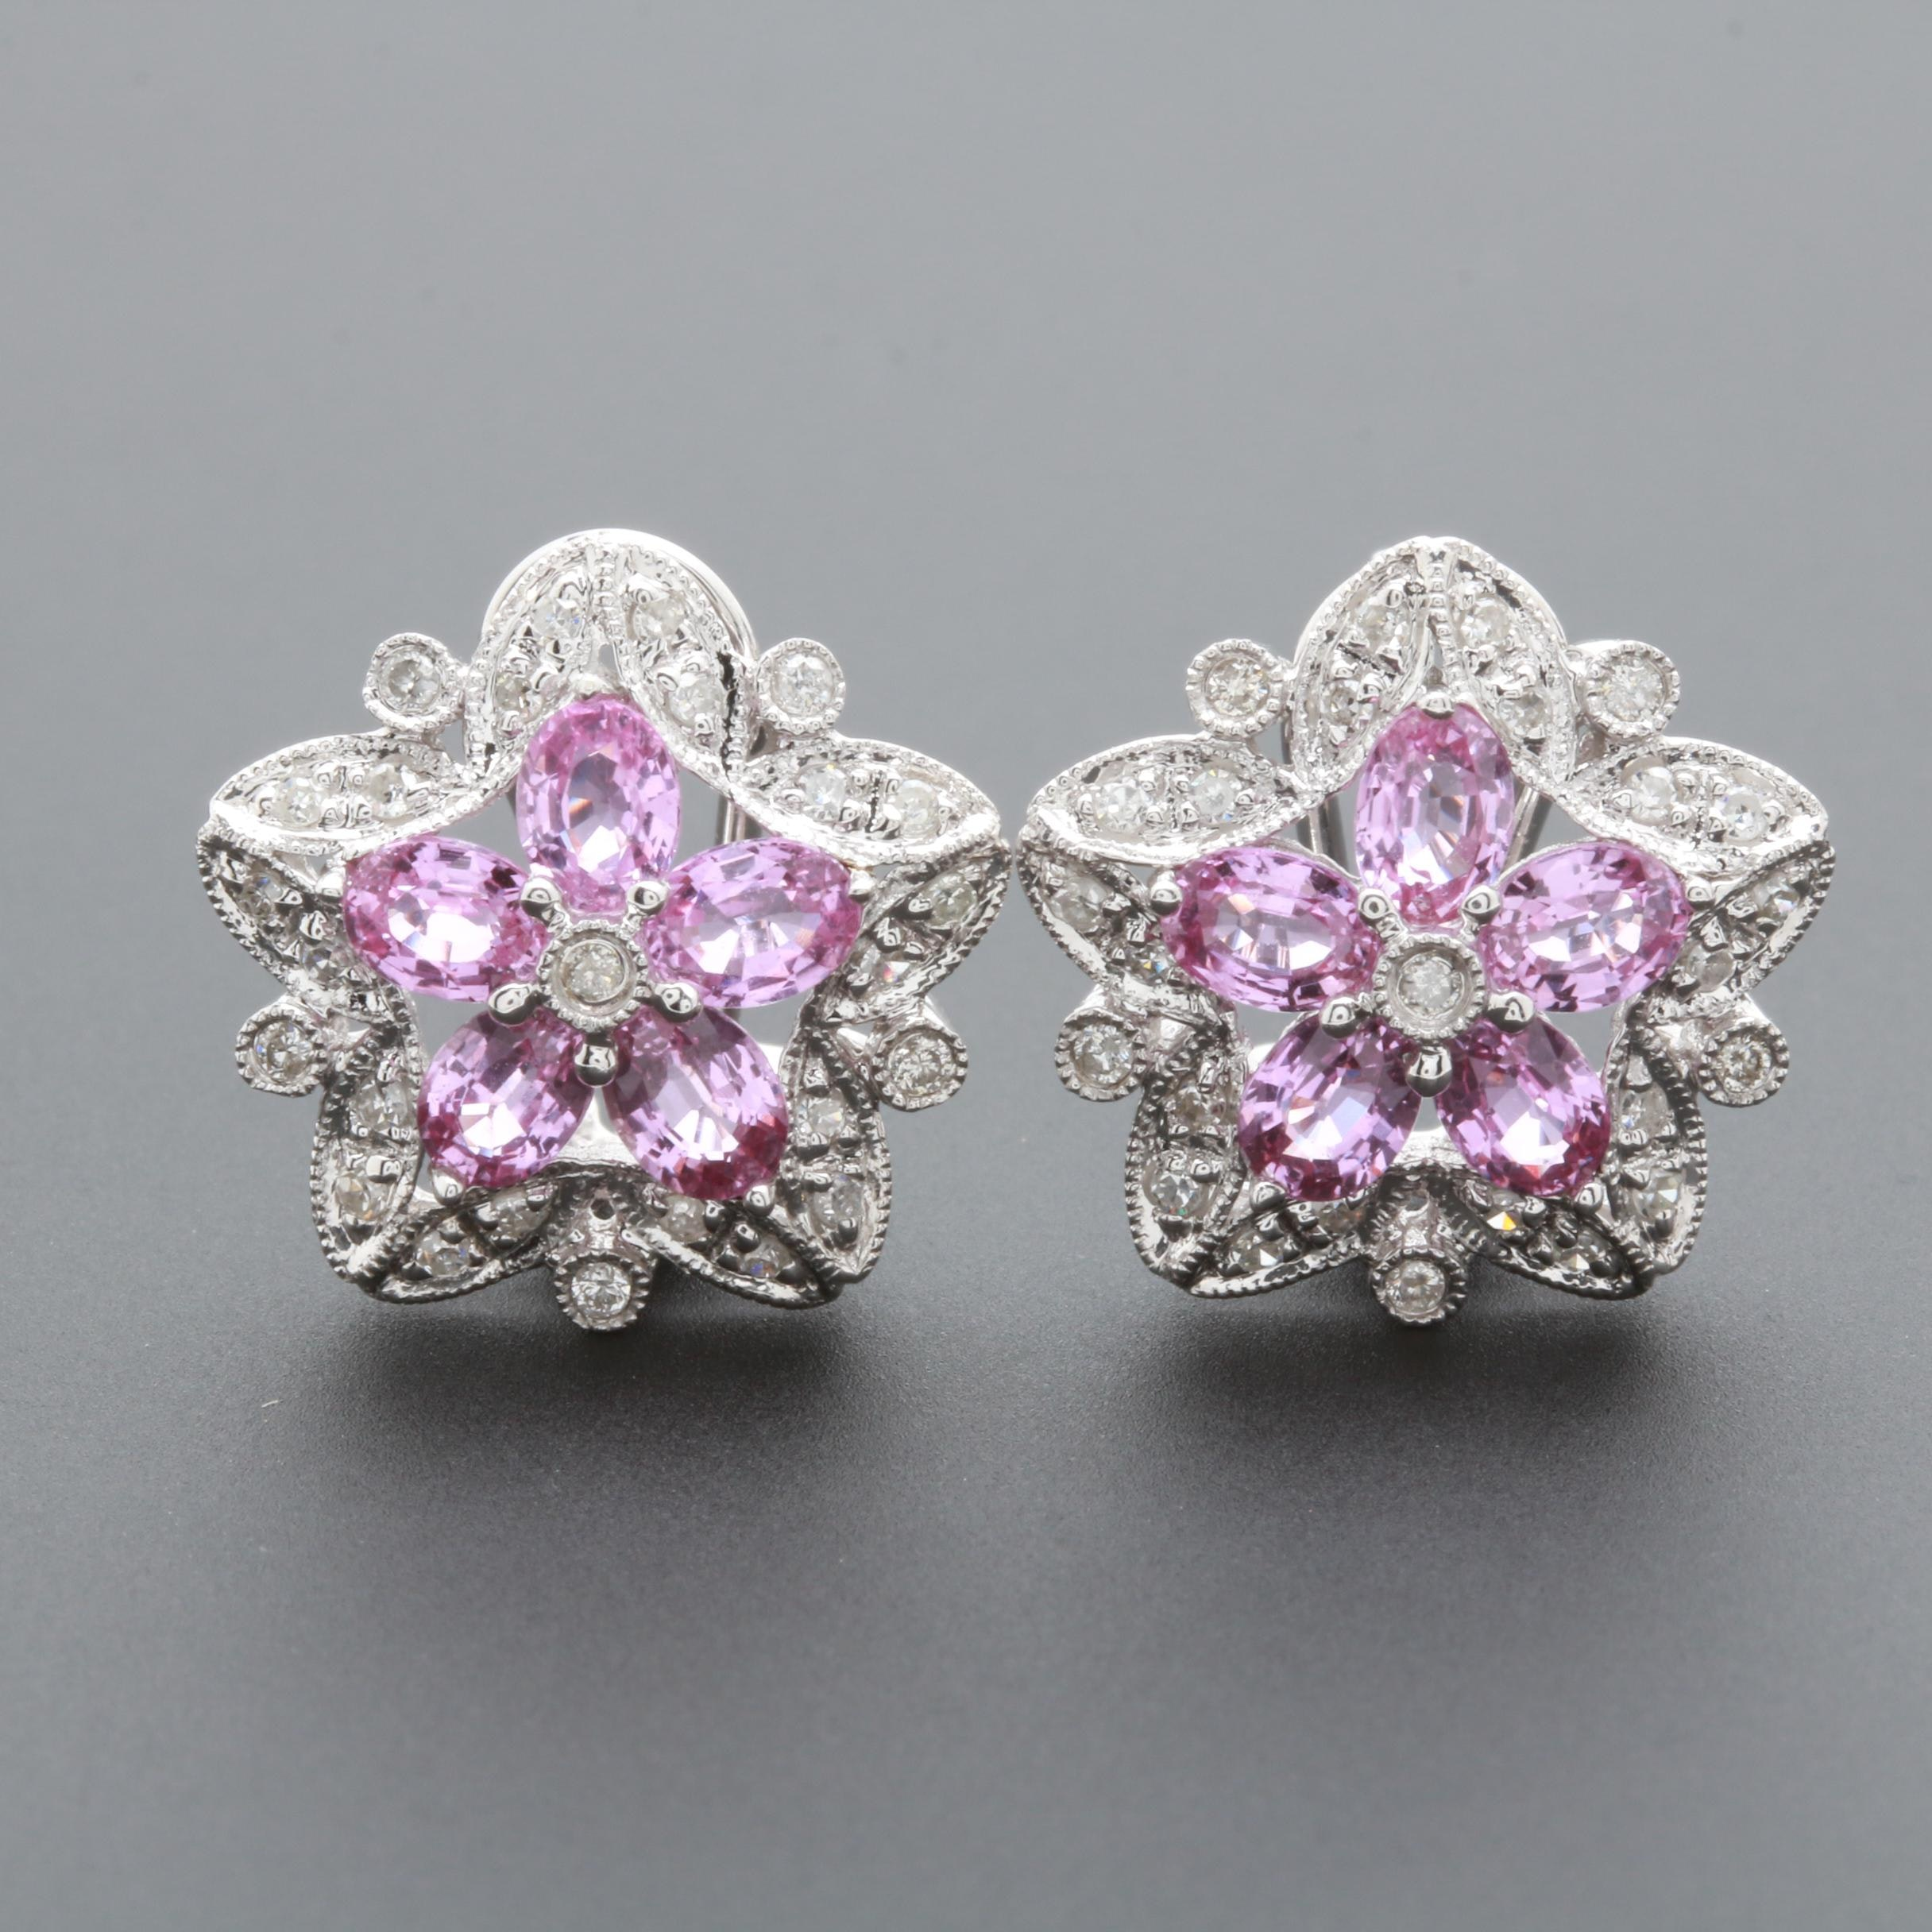 14K White Gold Untreated Pink Sapphire and Diamond Earrings